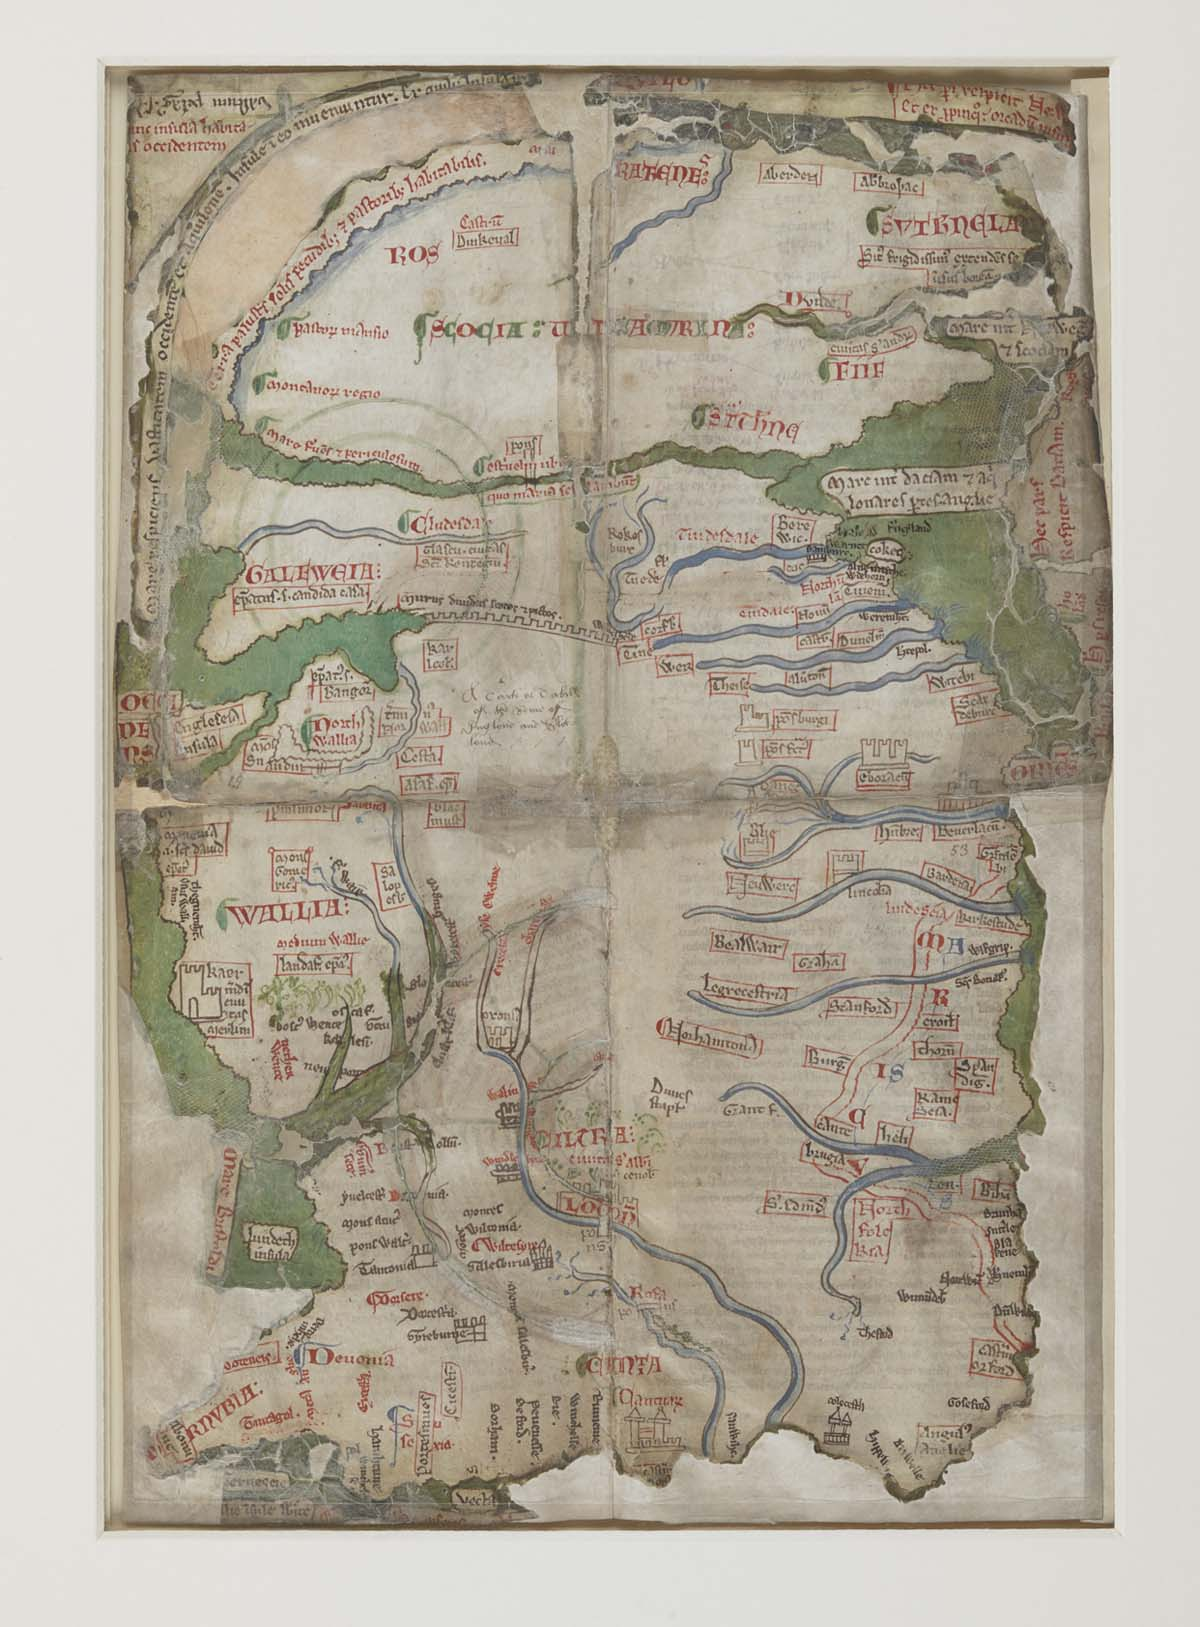 medieval representation of a map of the British Isles